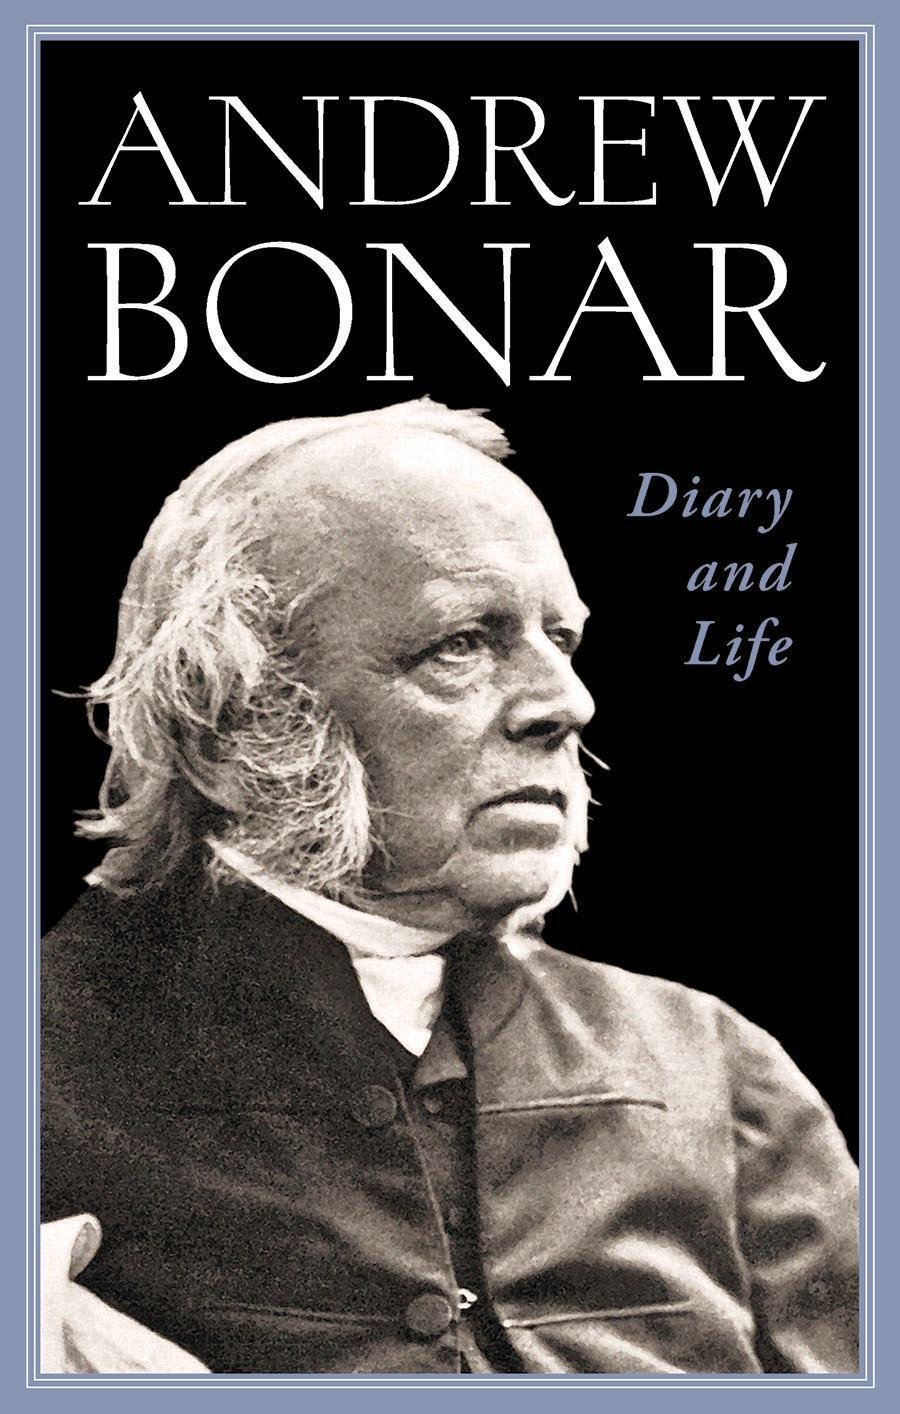 Book Cover for 'Andrew Bonar'